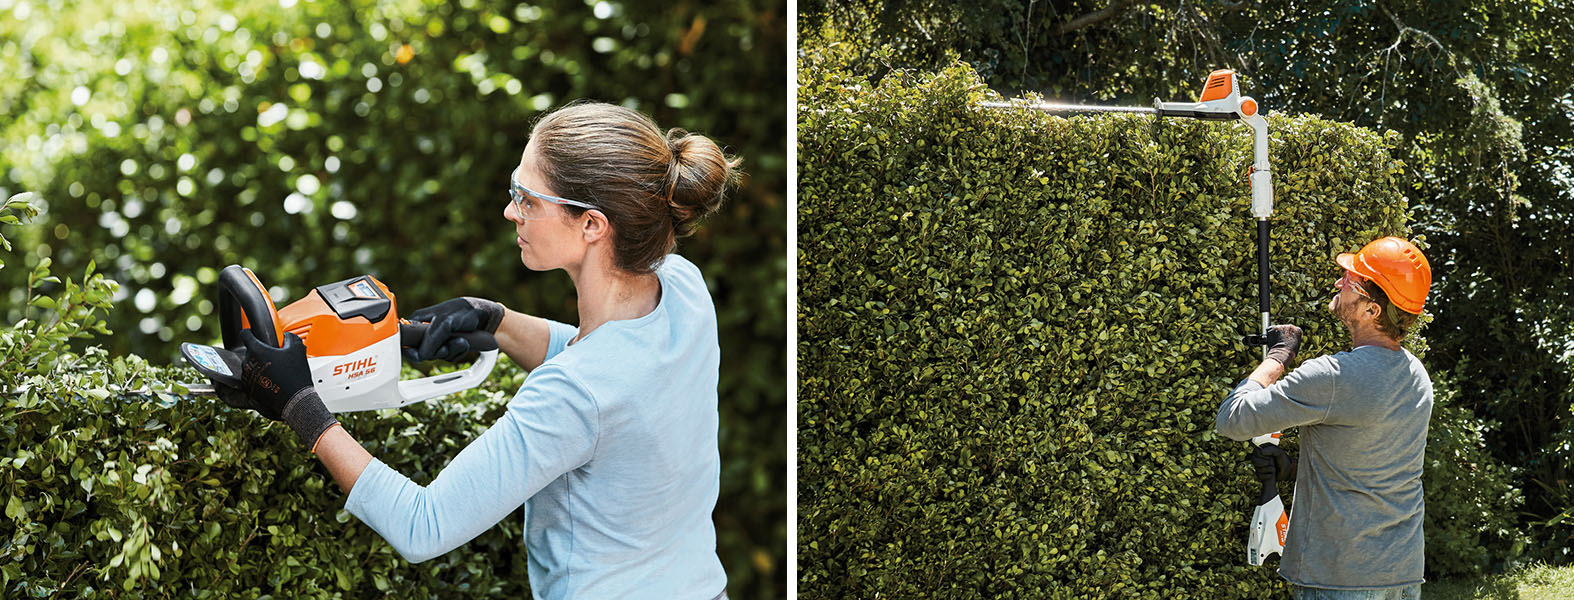 Hedge Trimmers by STIHL